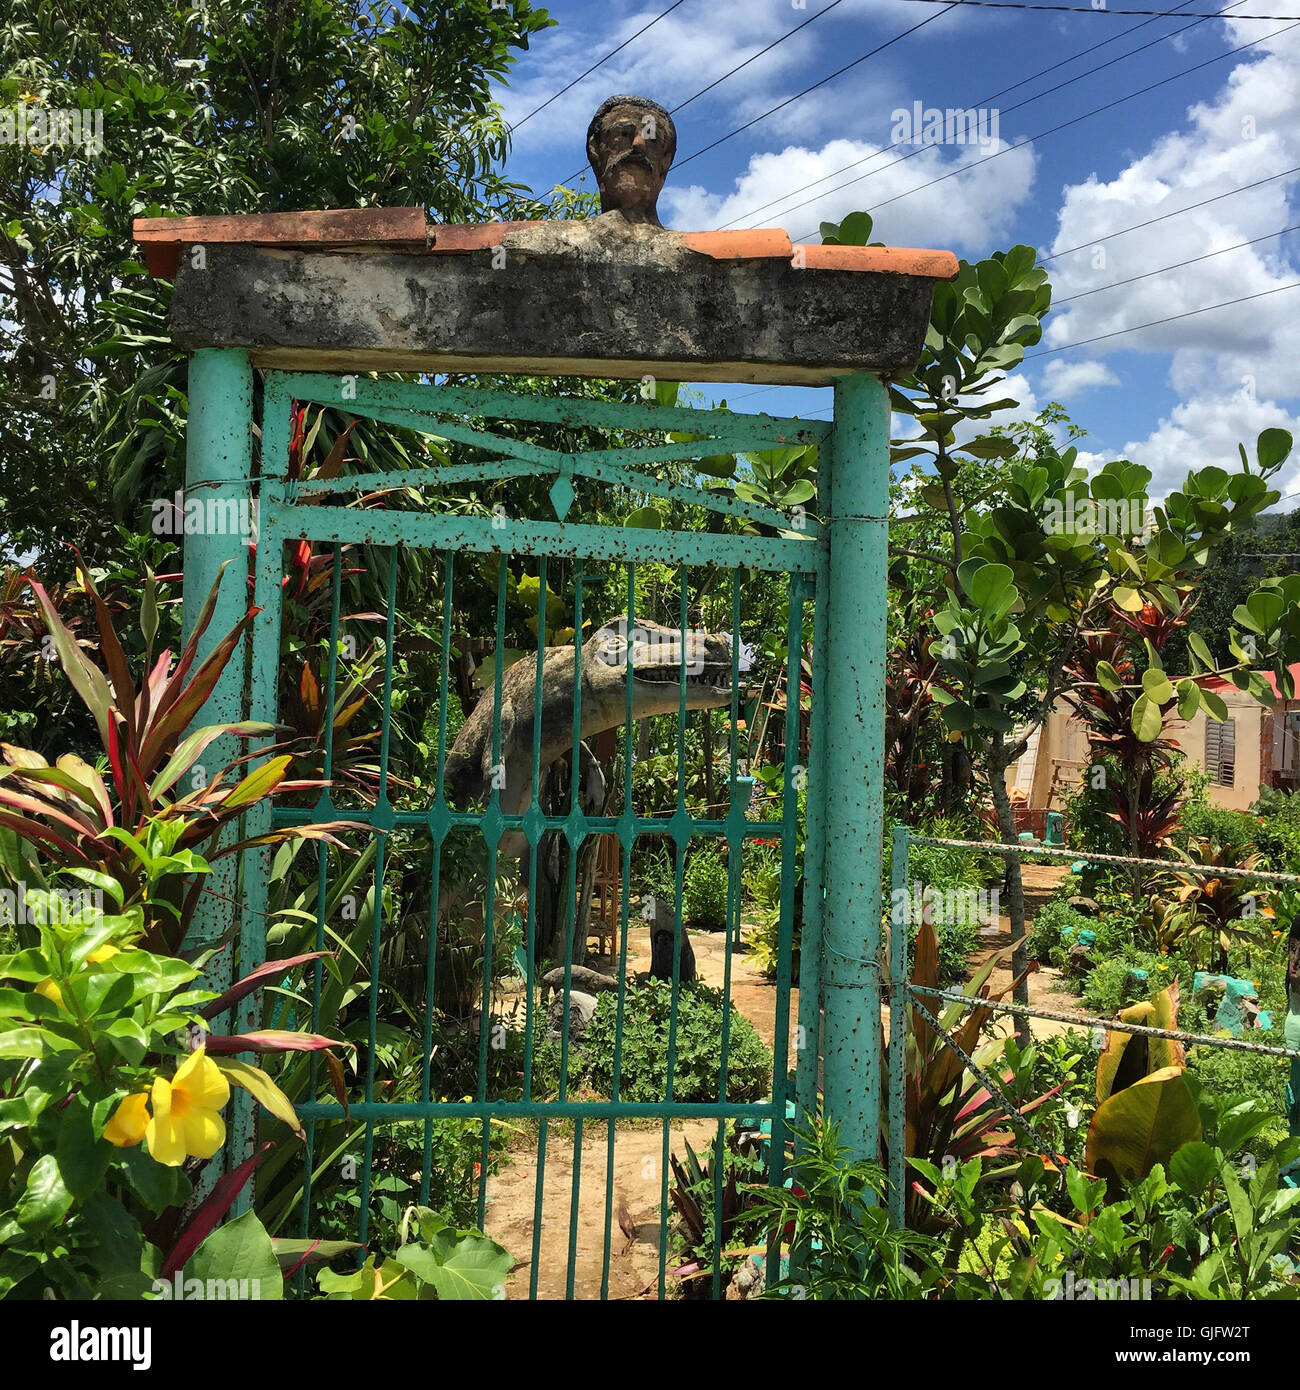 The entrance to the small and unusual, Parque Prehistórico museum in Viñales, Cuba. - Stock Image